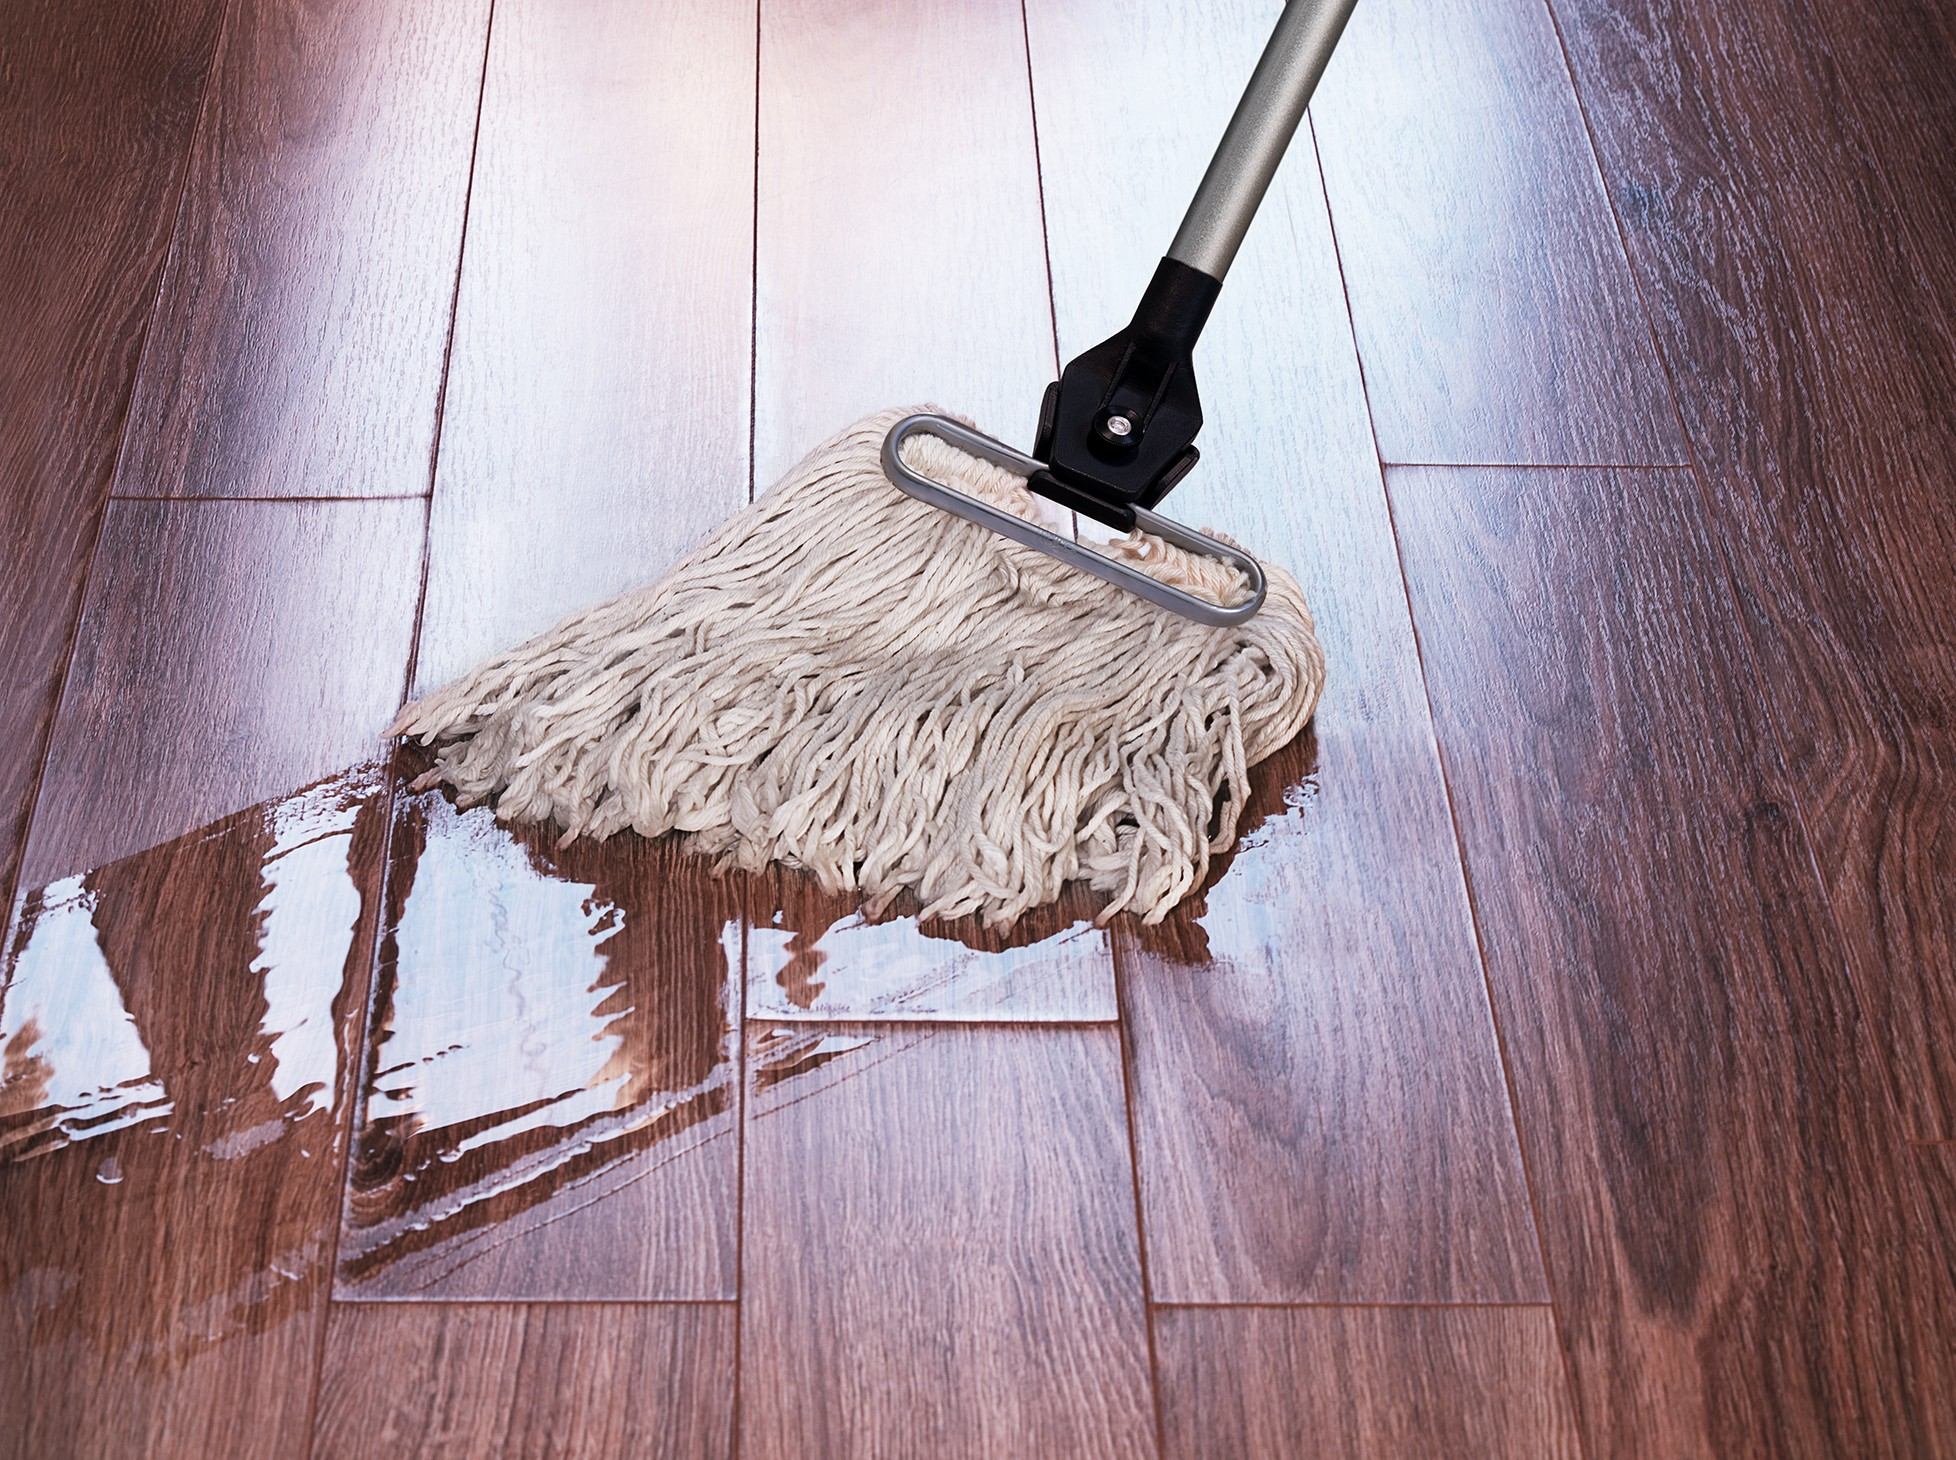 Cleaning Vinyl Floors - The Best Step By Step Guide